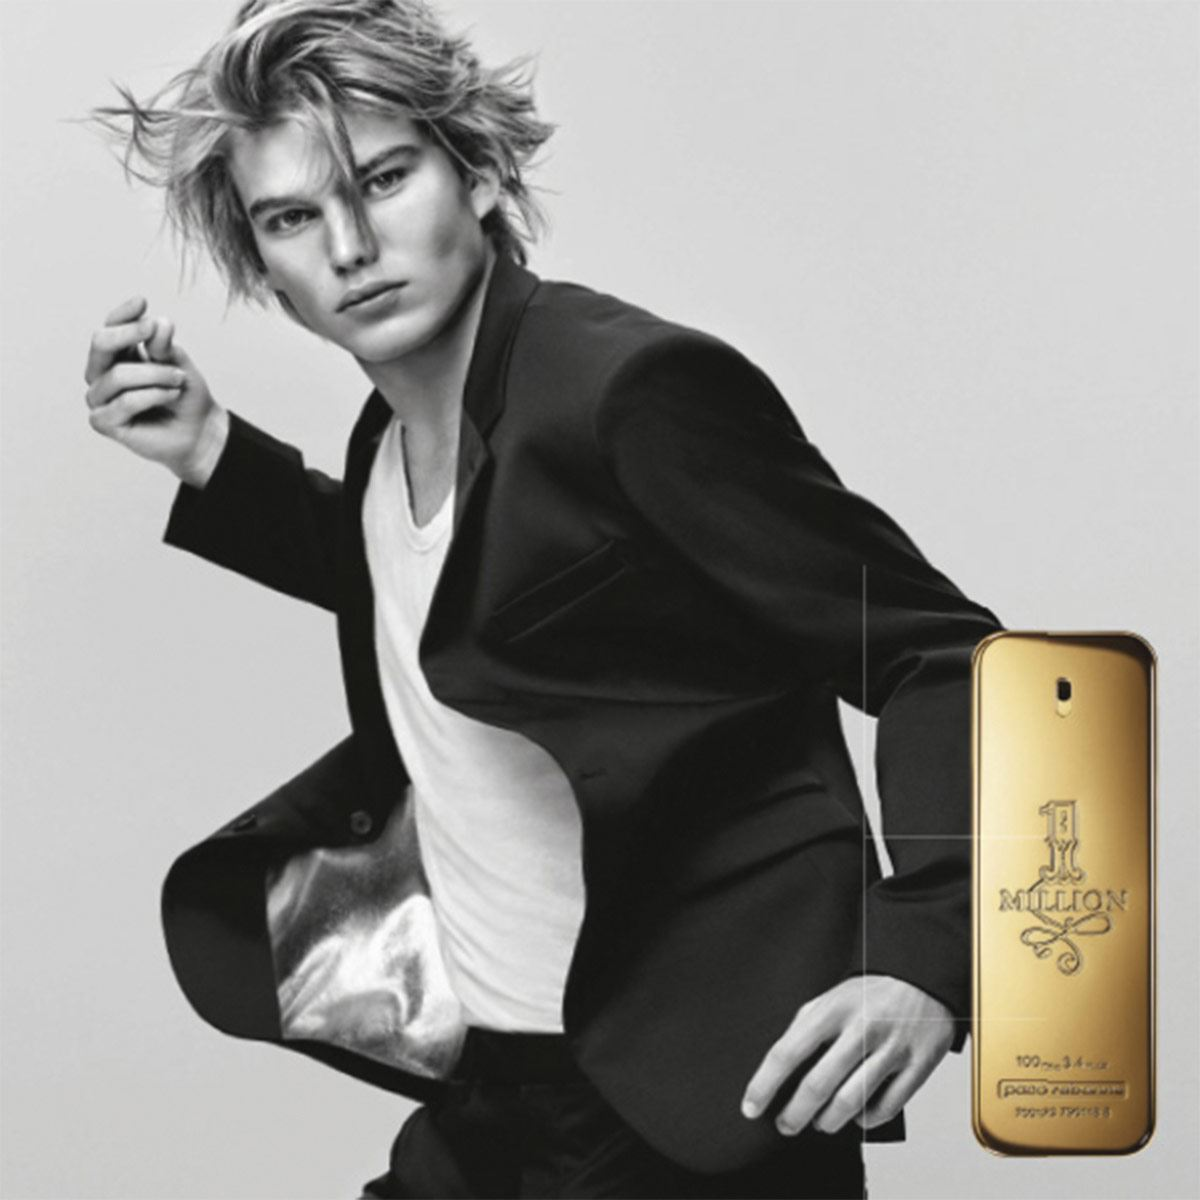 Fragancia para caballero, paco rabanne, 1 million edt 100ml  - Sanborns